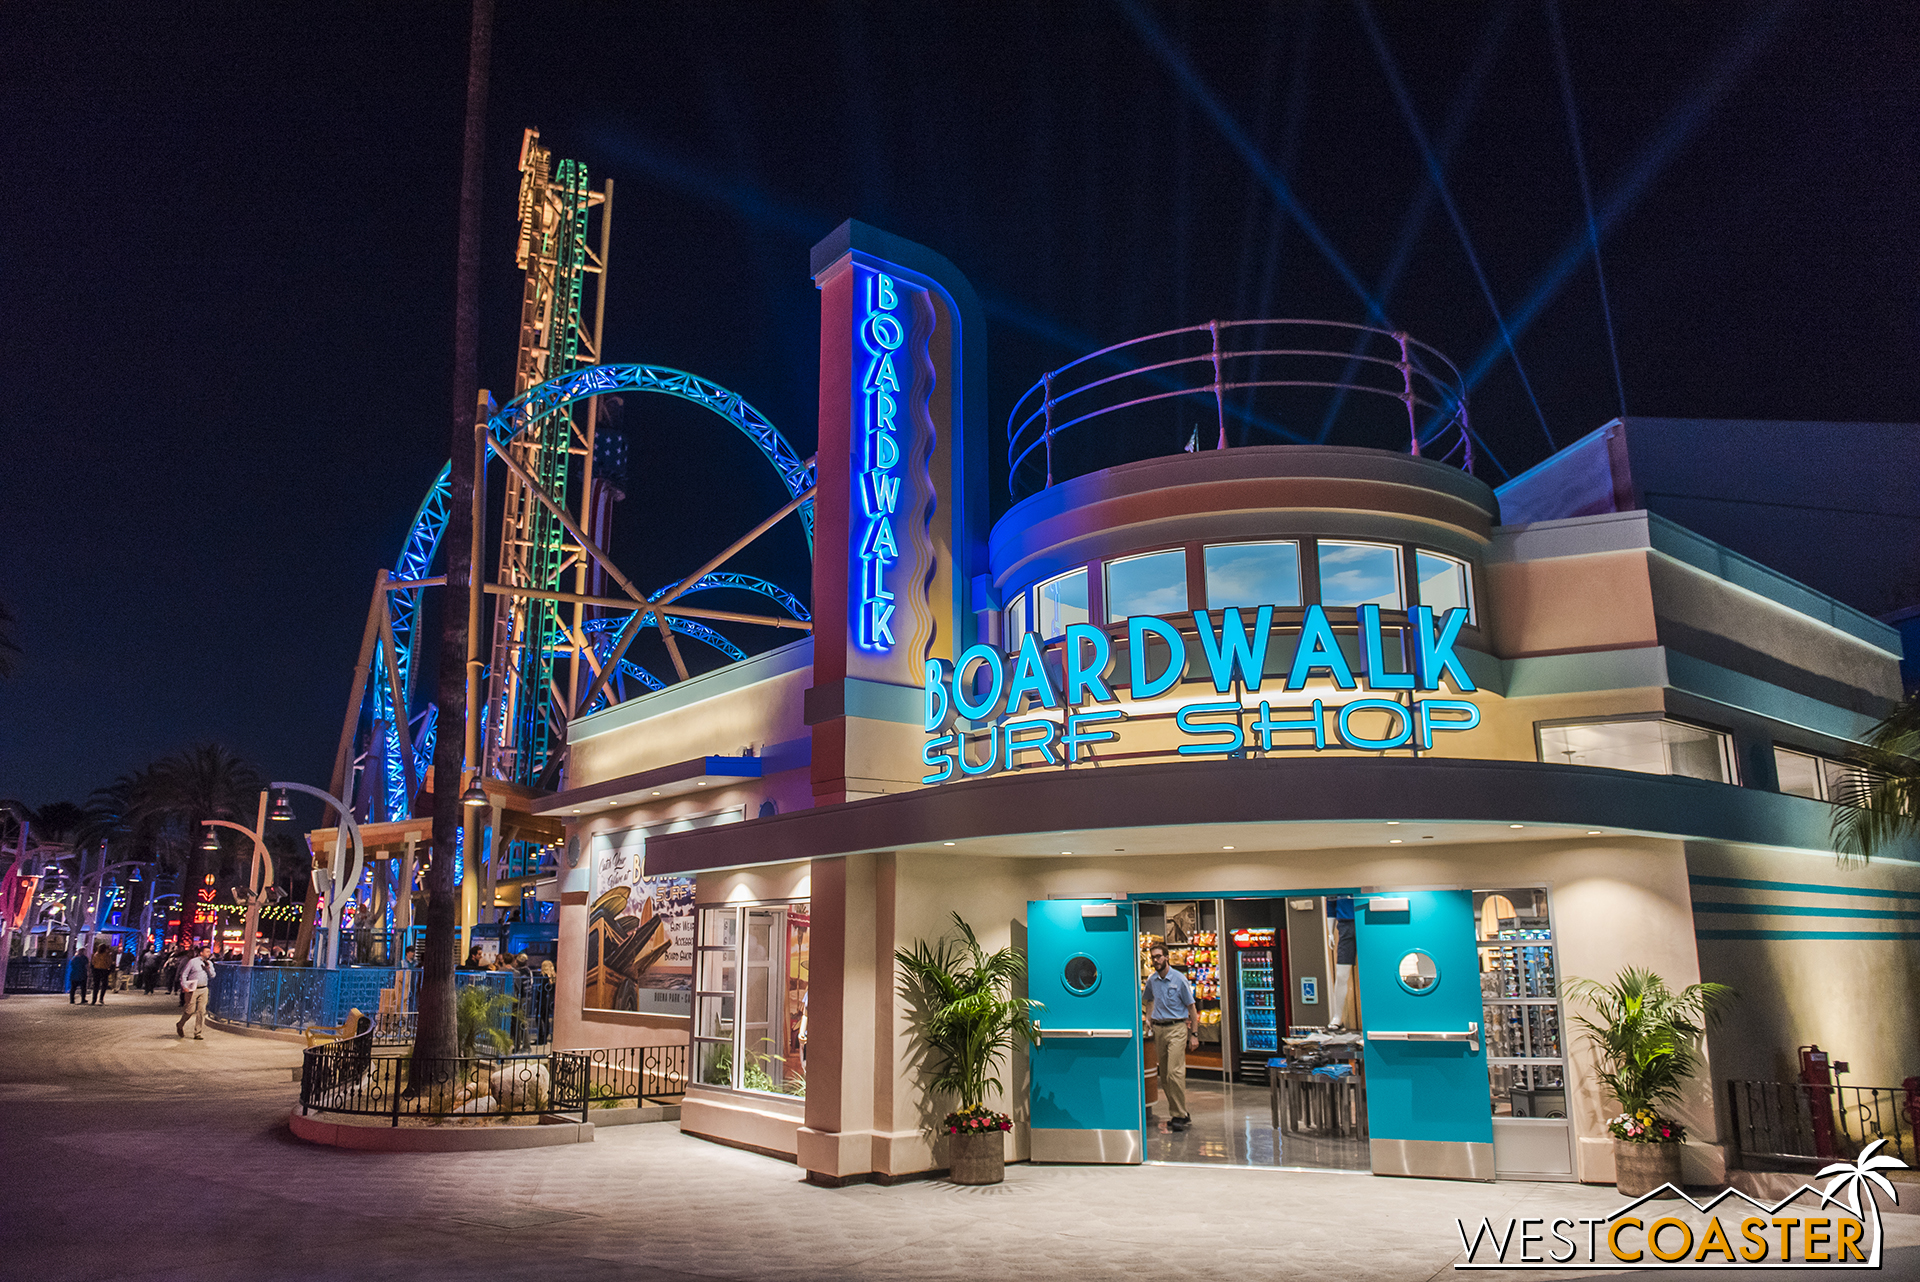 The Boardwalk Surf Shop looks great at night!